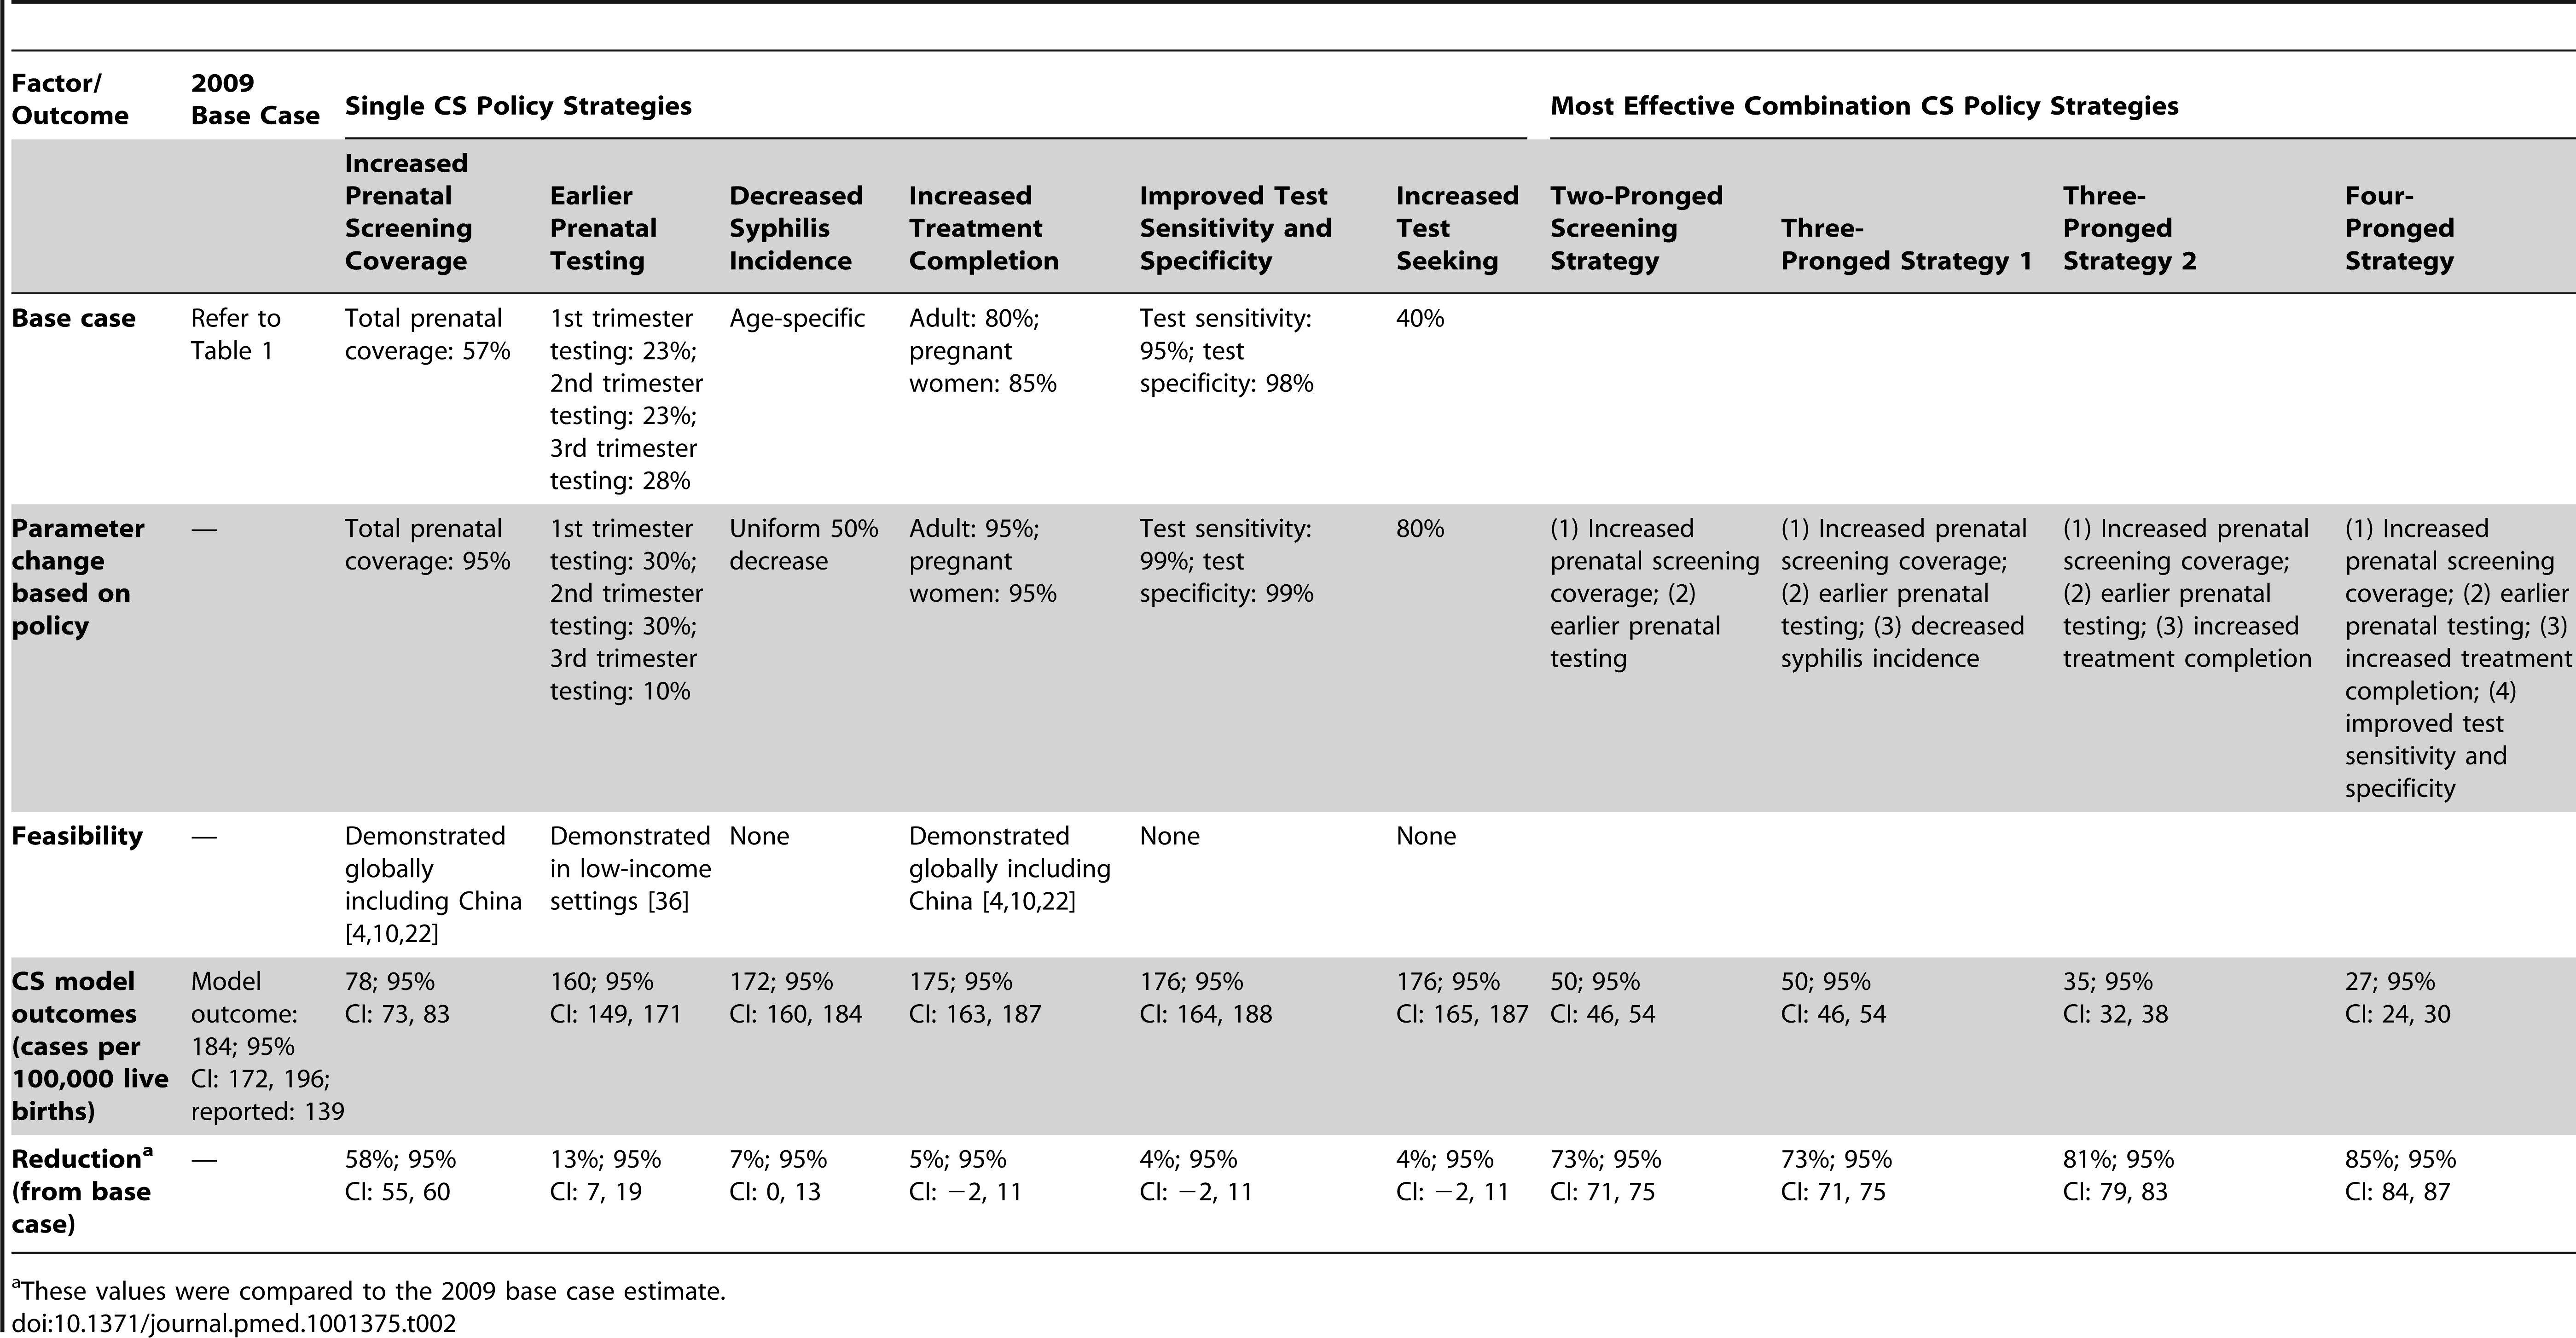 Summary of estimated outcomes with parameters from the base case scenario, single CS policy strategies, and combination strategies.